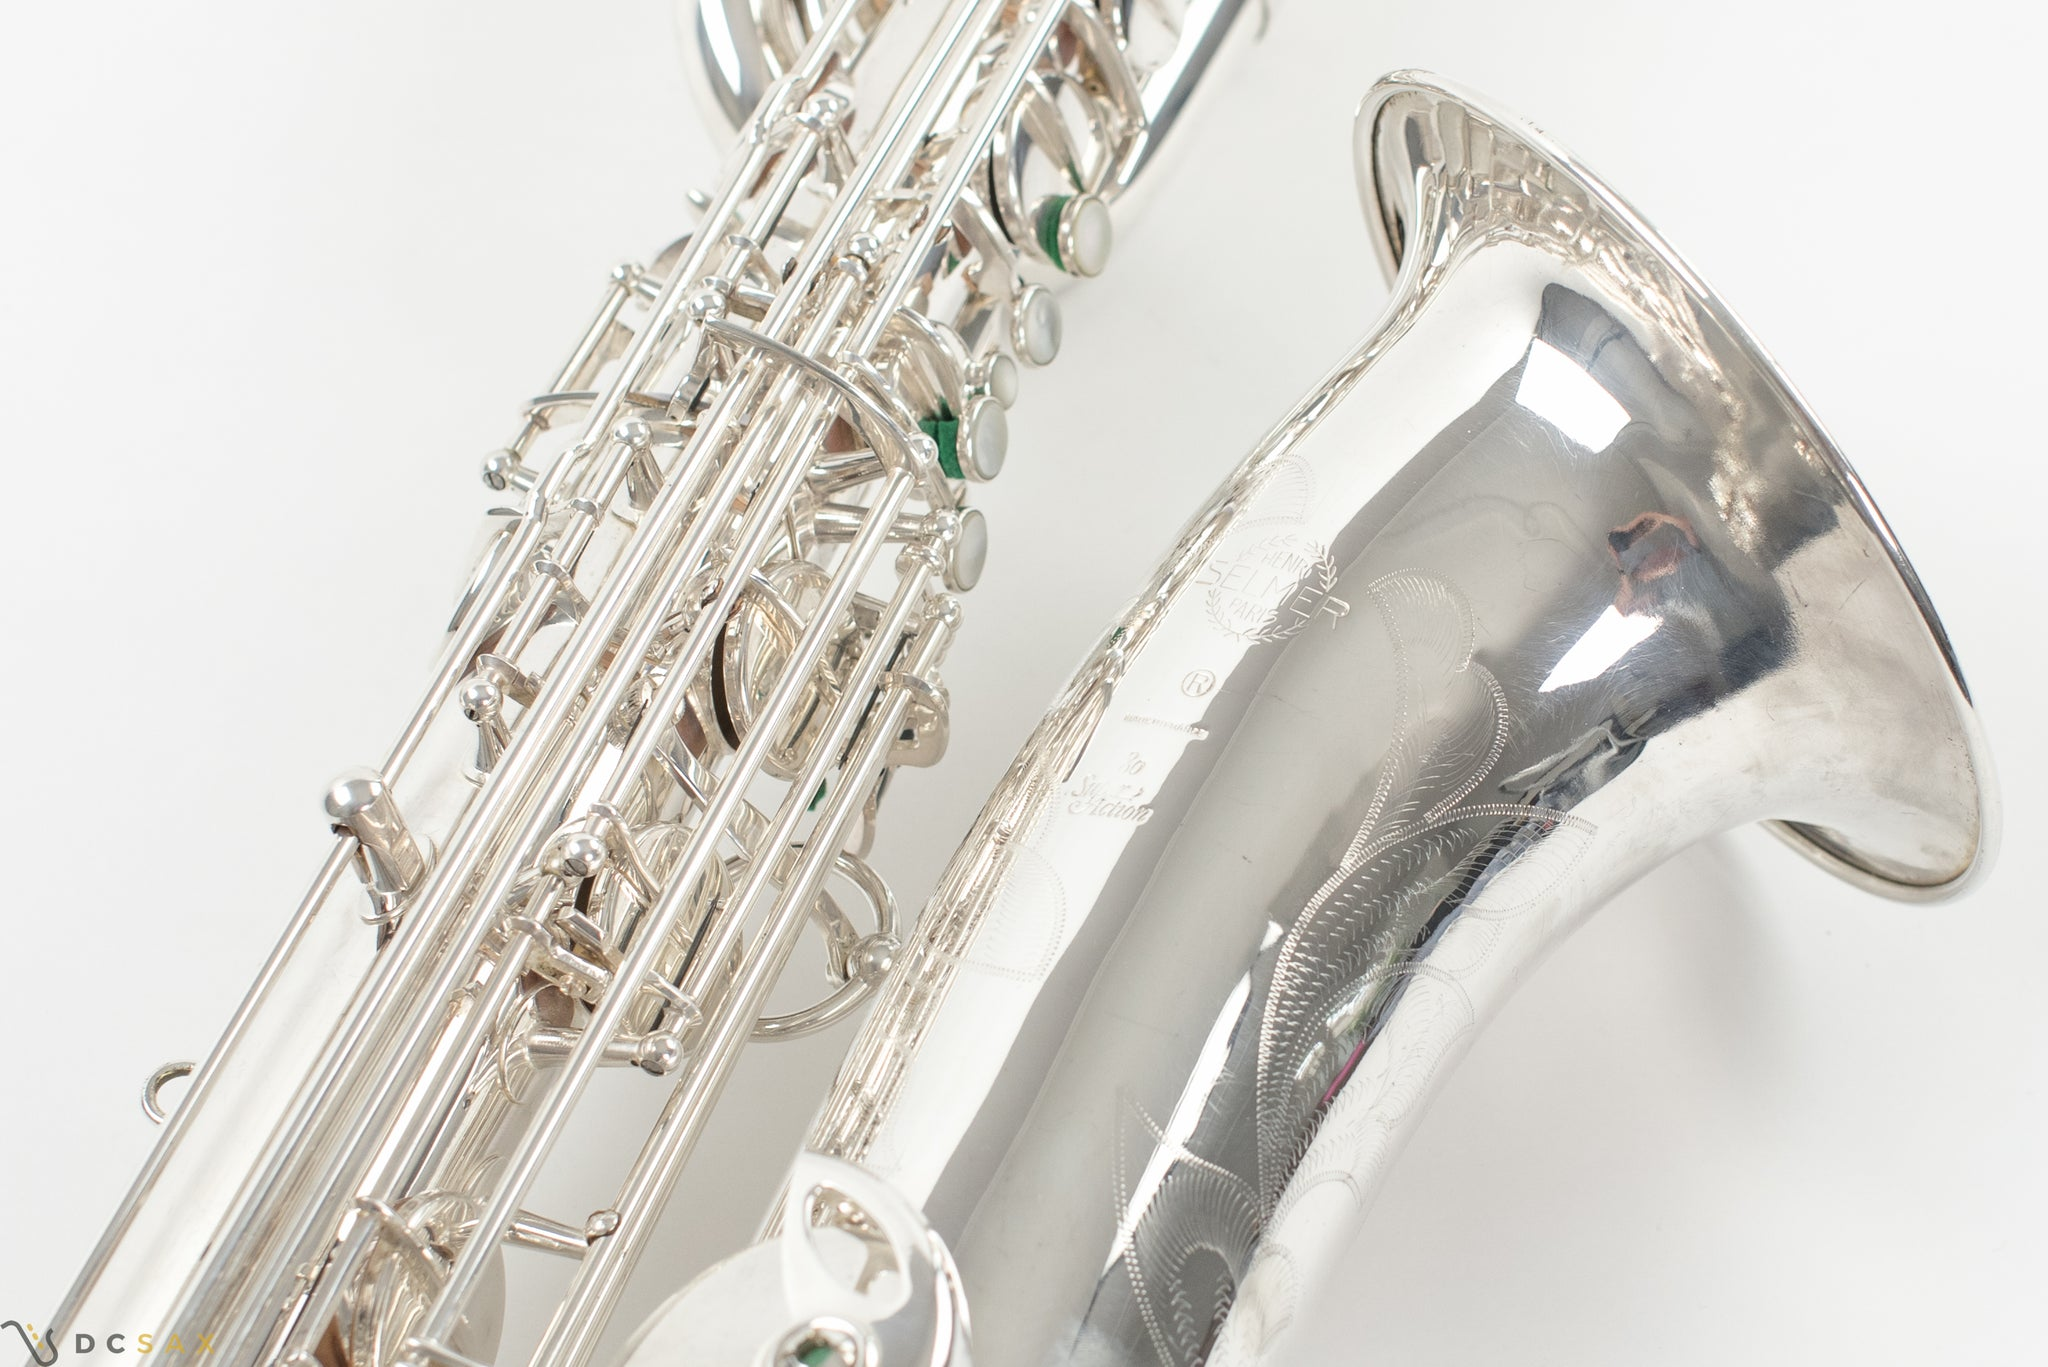 Selmer Super Action 80 Baritone Saxophone, Silver Plated